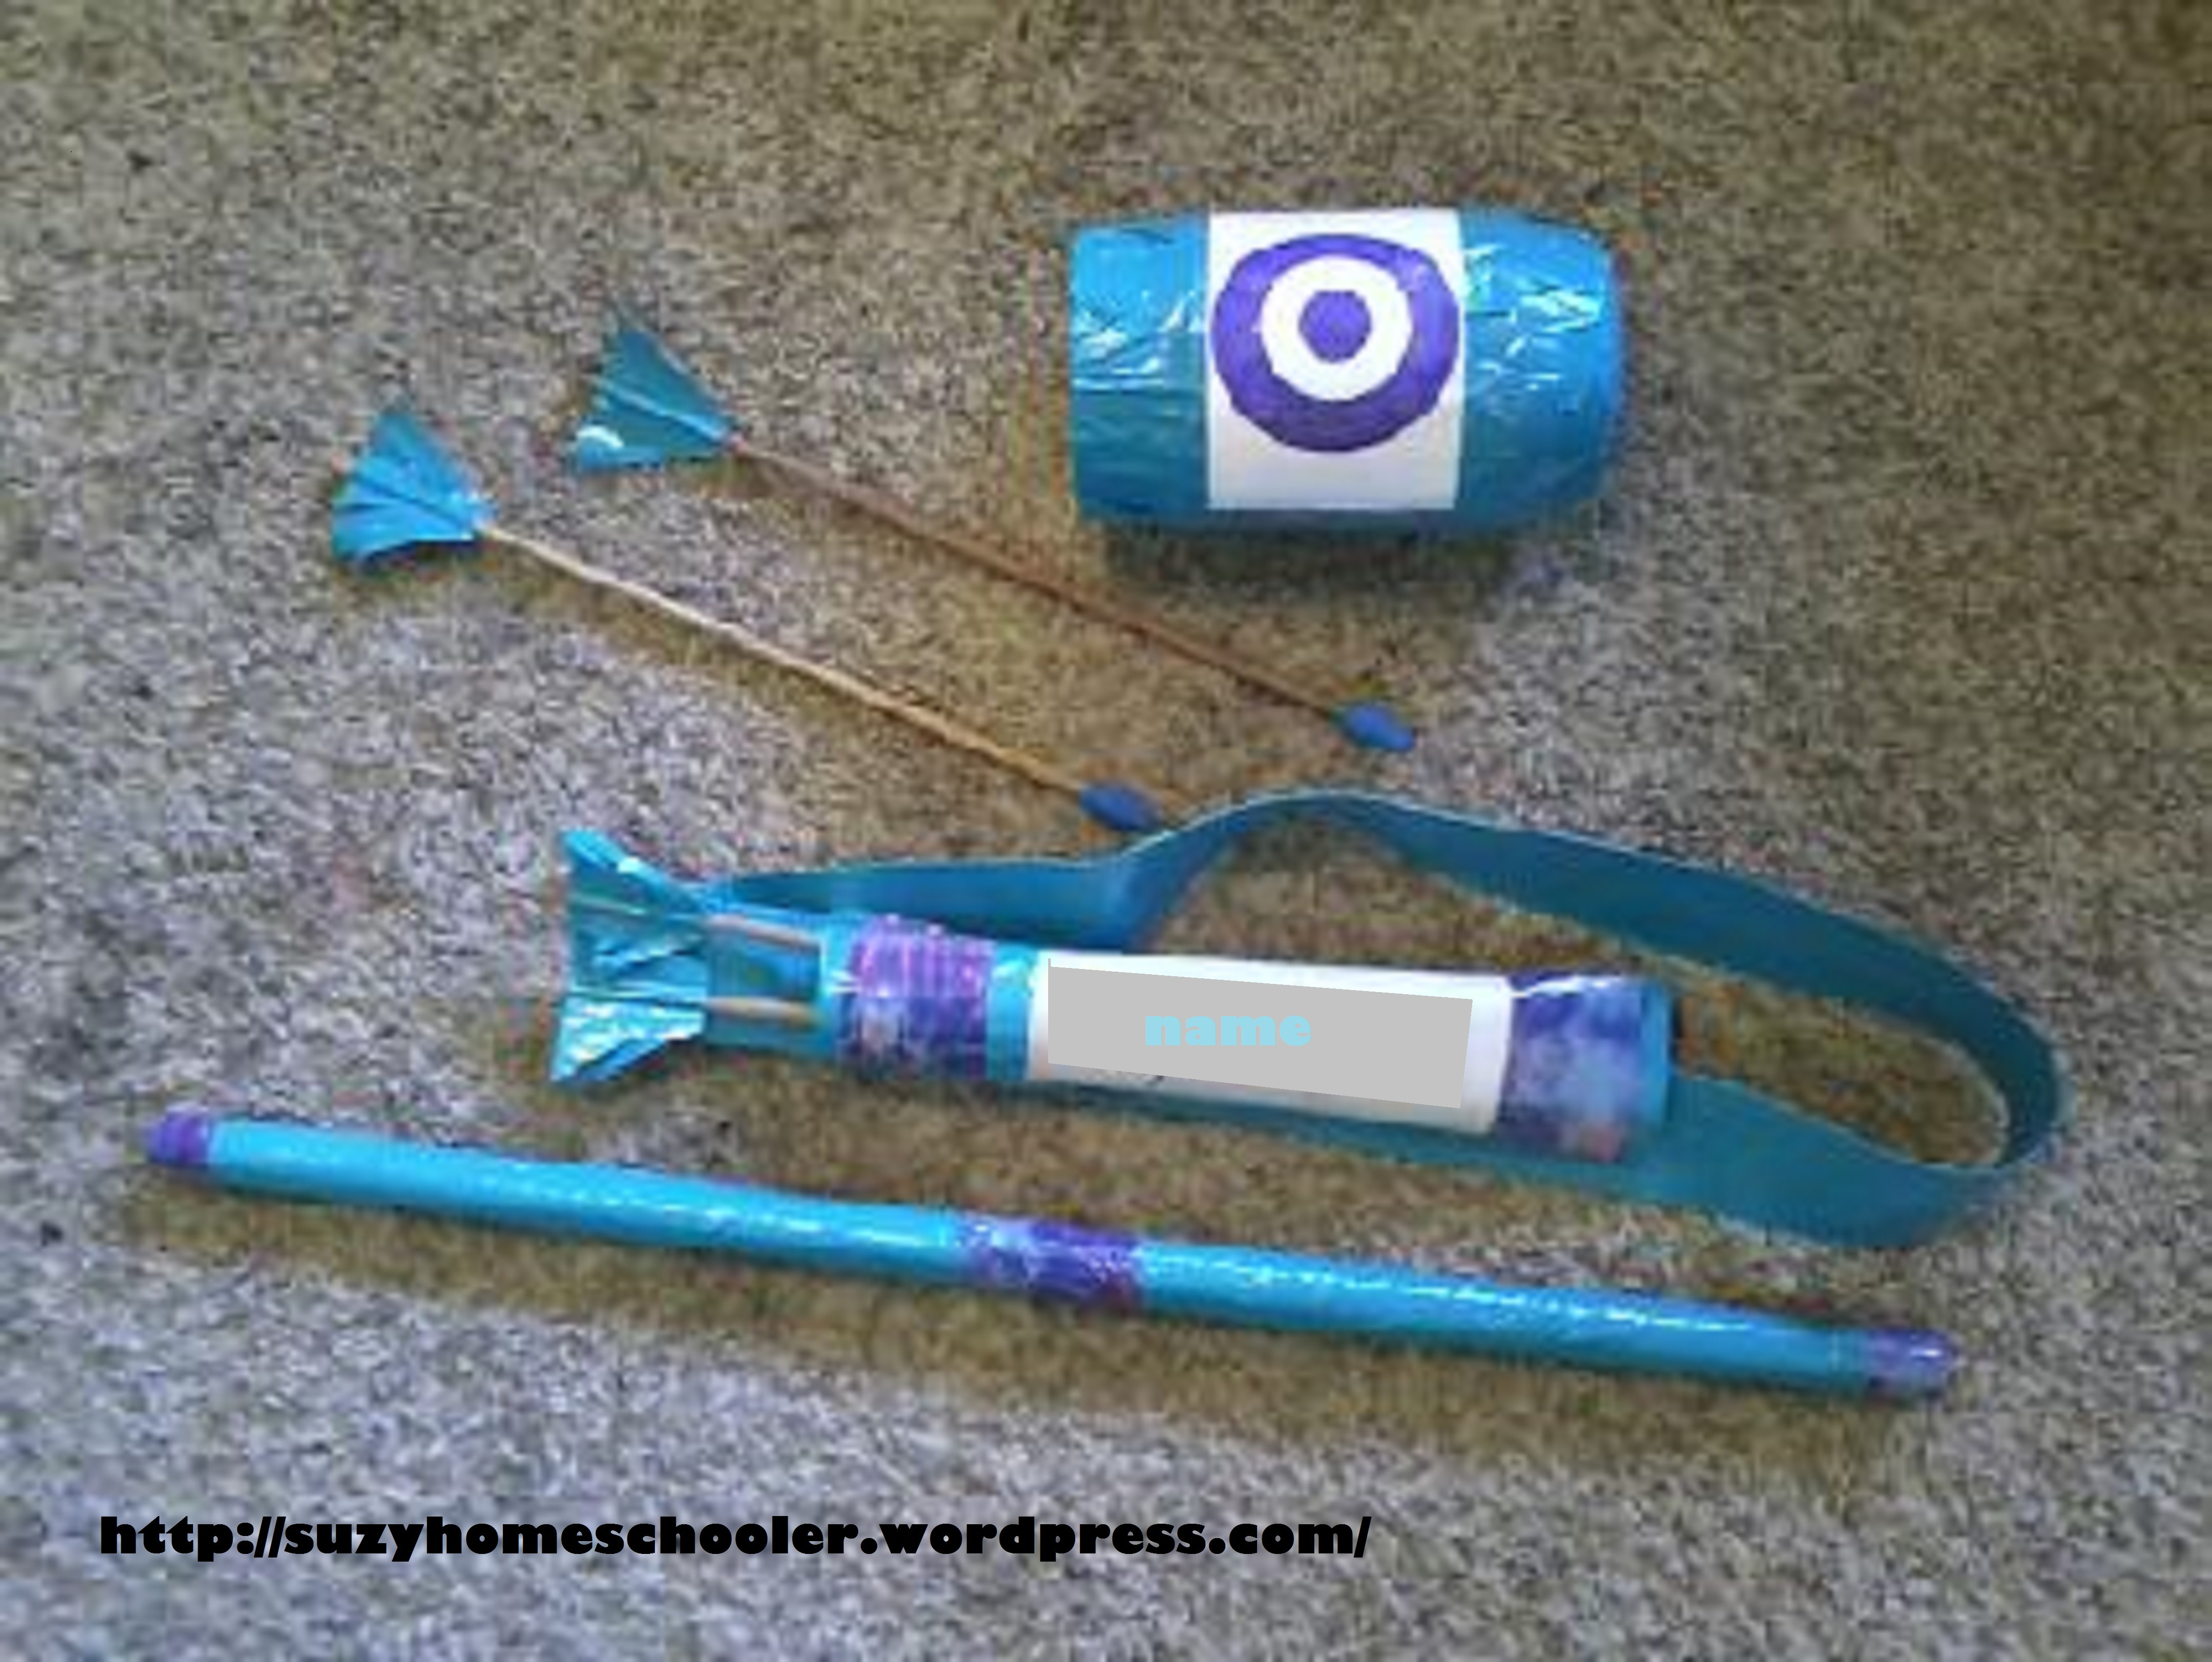 Best ideas about DIY Bow And Arrow . Save or Pin Easy DIY Bow and Arrow Set – Suzy Homeschooler Now.